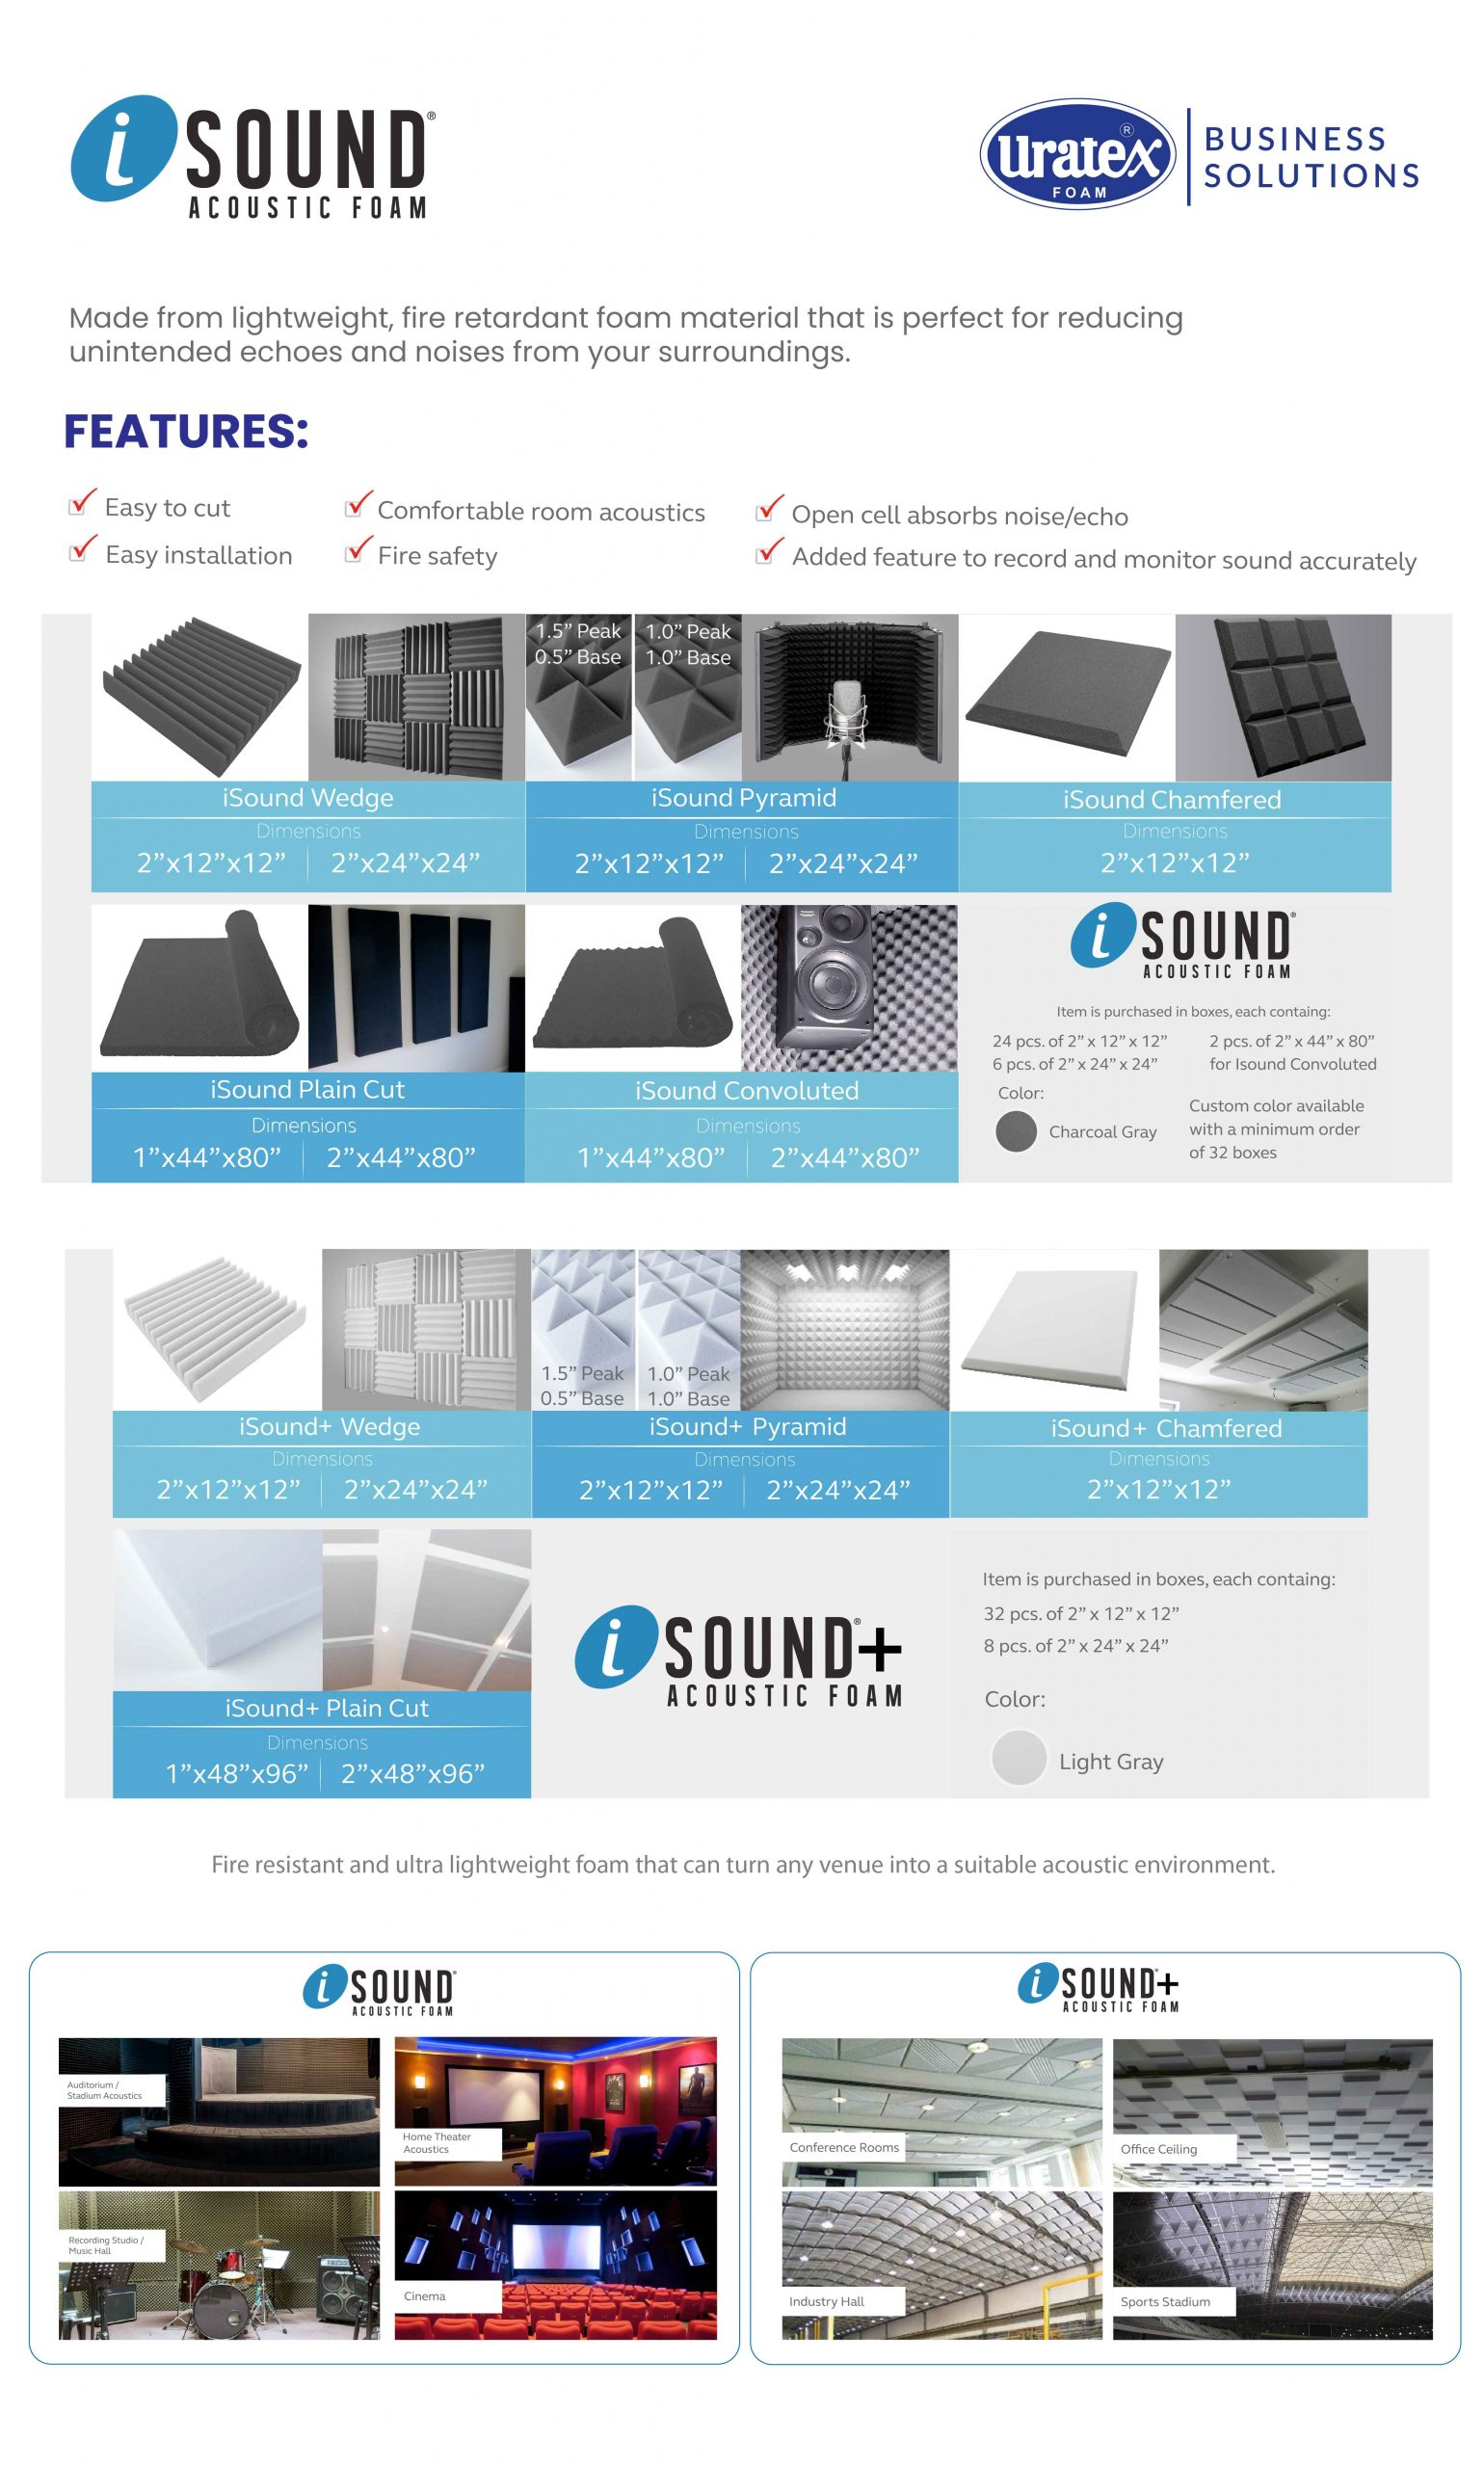 Enhance the Acoustic Experience in Any Venue With Isound Acoustic Foam by Uratex